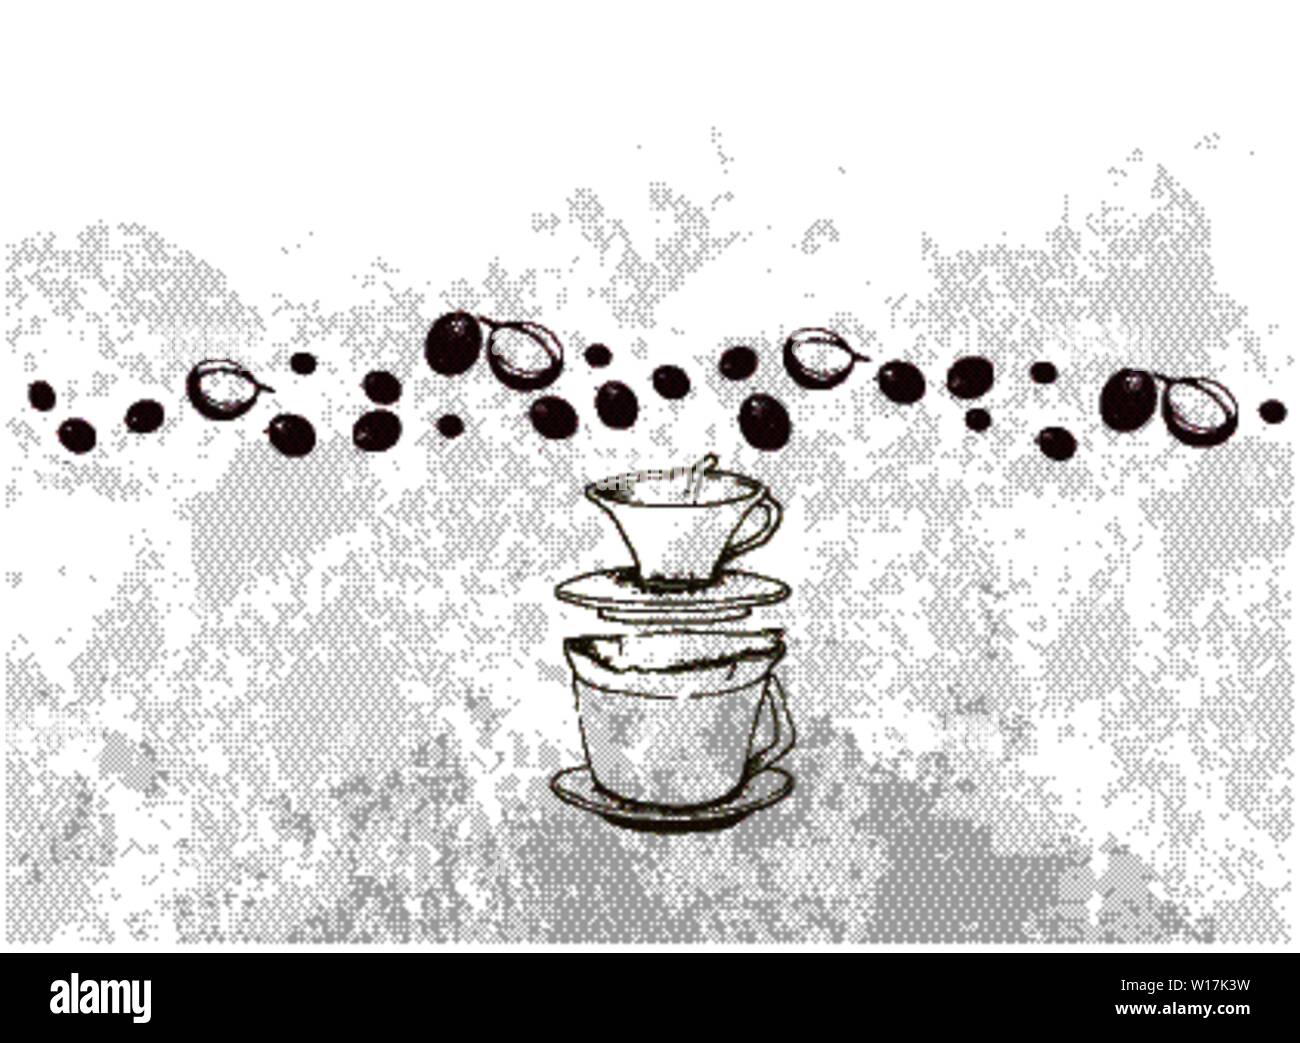 Good Morning, Illustration Hand Drawn Sketch of Coffee Beans with Drip Coffeemaker and Whole Grain Bread Sandwich. An Utensil Used to Brew Coffee Stock Vector